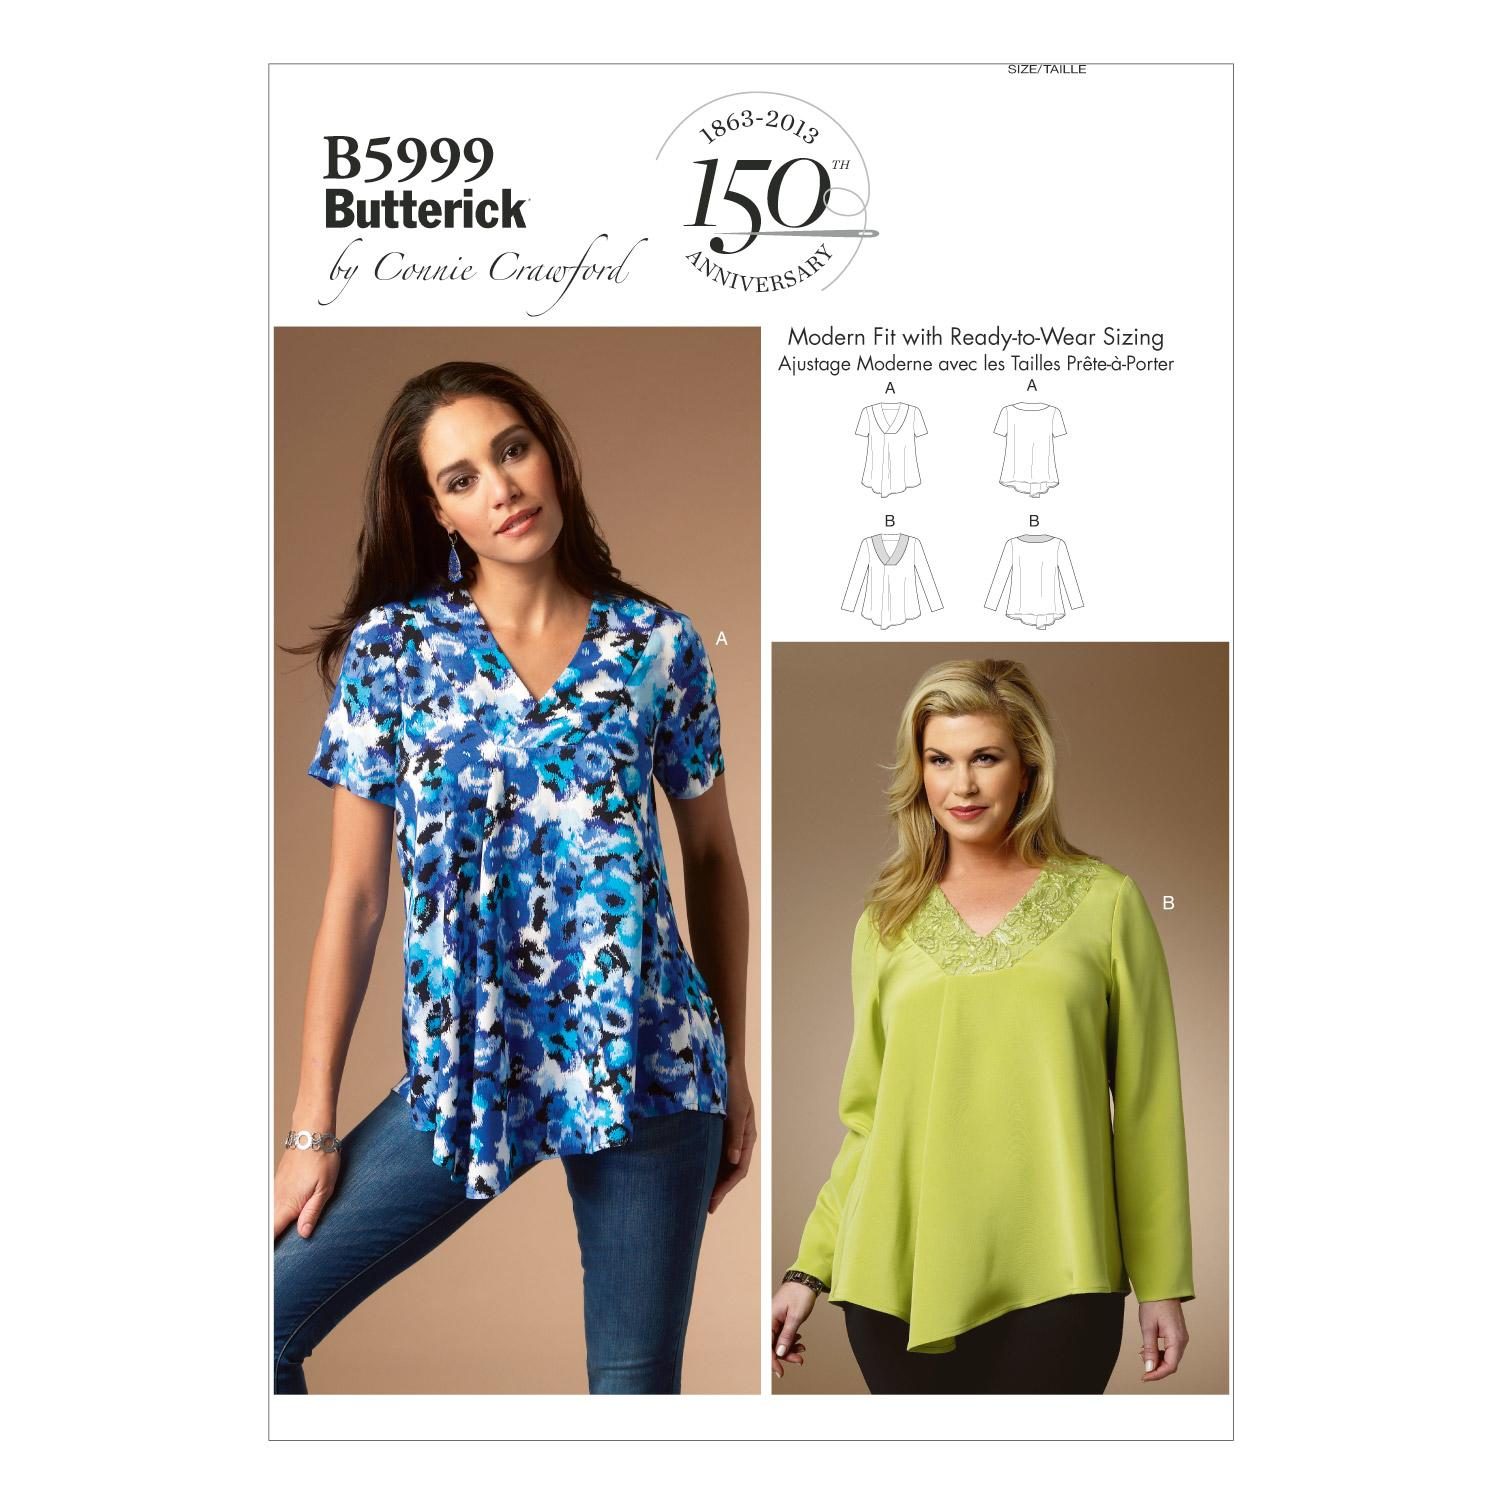 Butterick B5999 Misses'/Women's Top